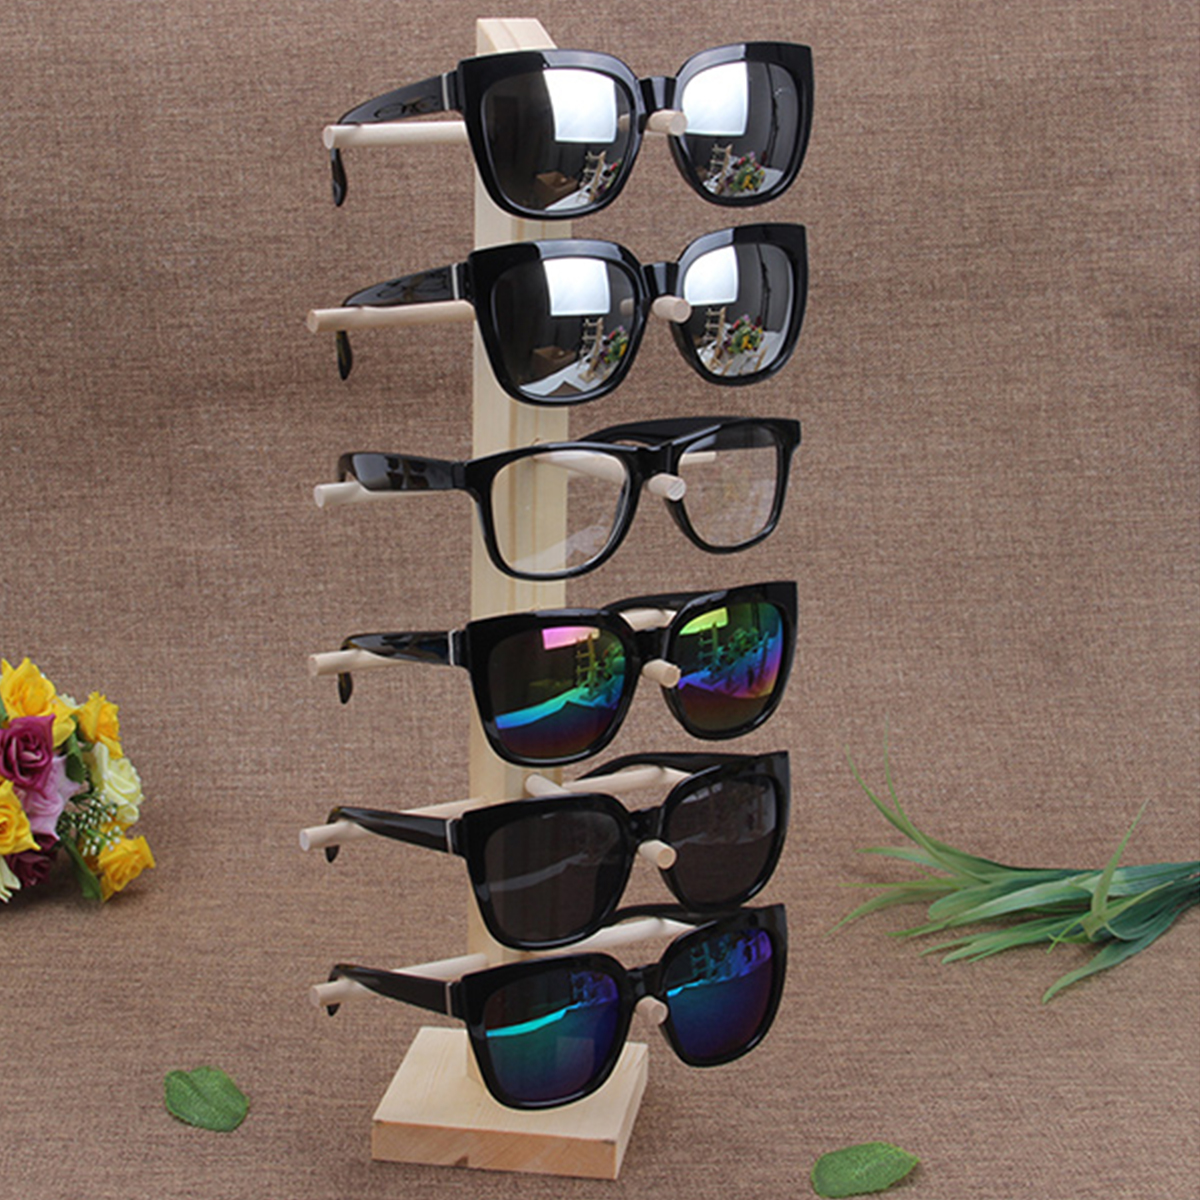 Natural Wood Wooden Sunglasses Eyeglasseses Display Rack Stand Holder Organizer 3/4/5/6 Layers